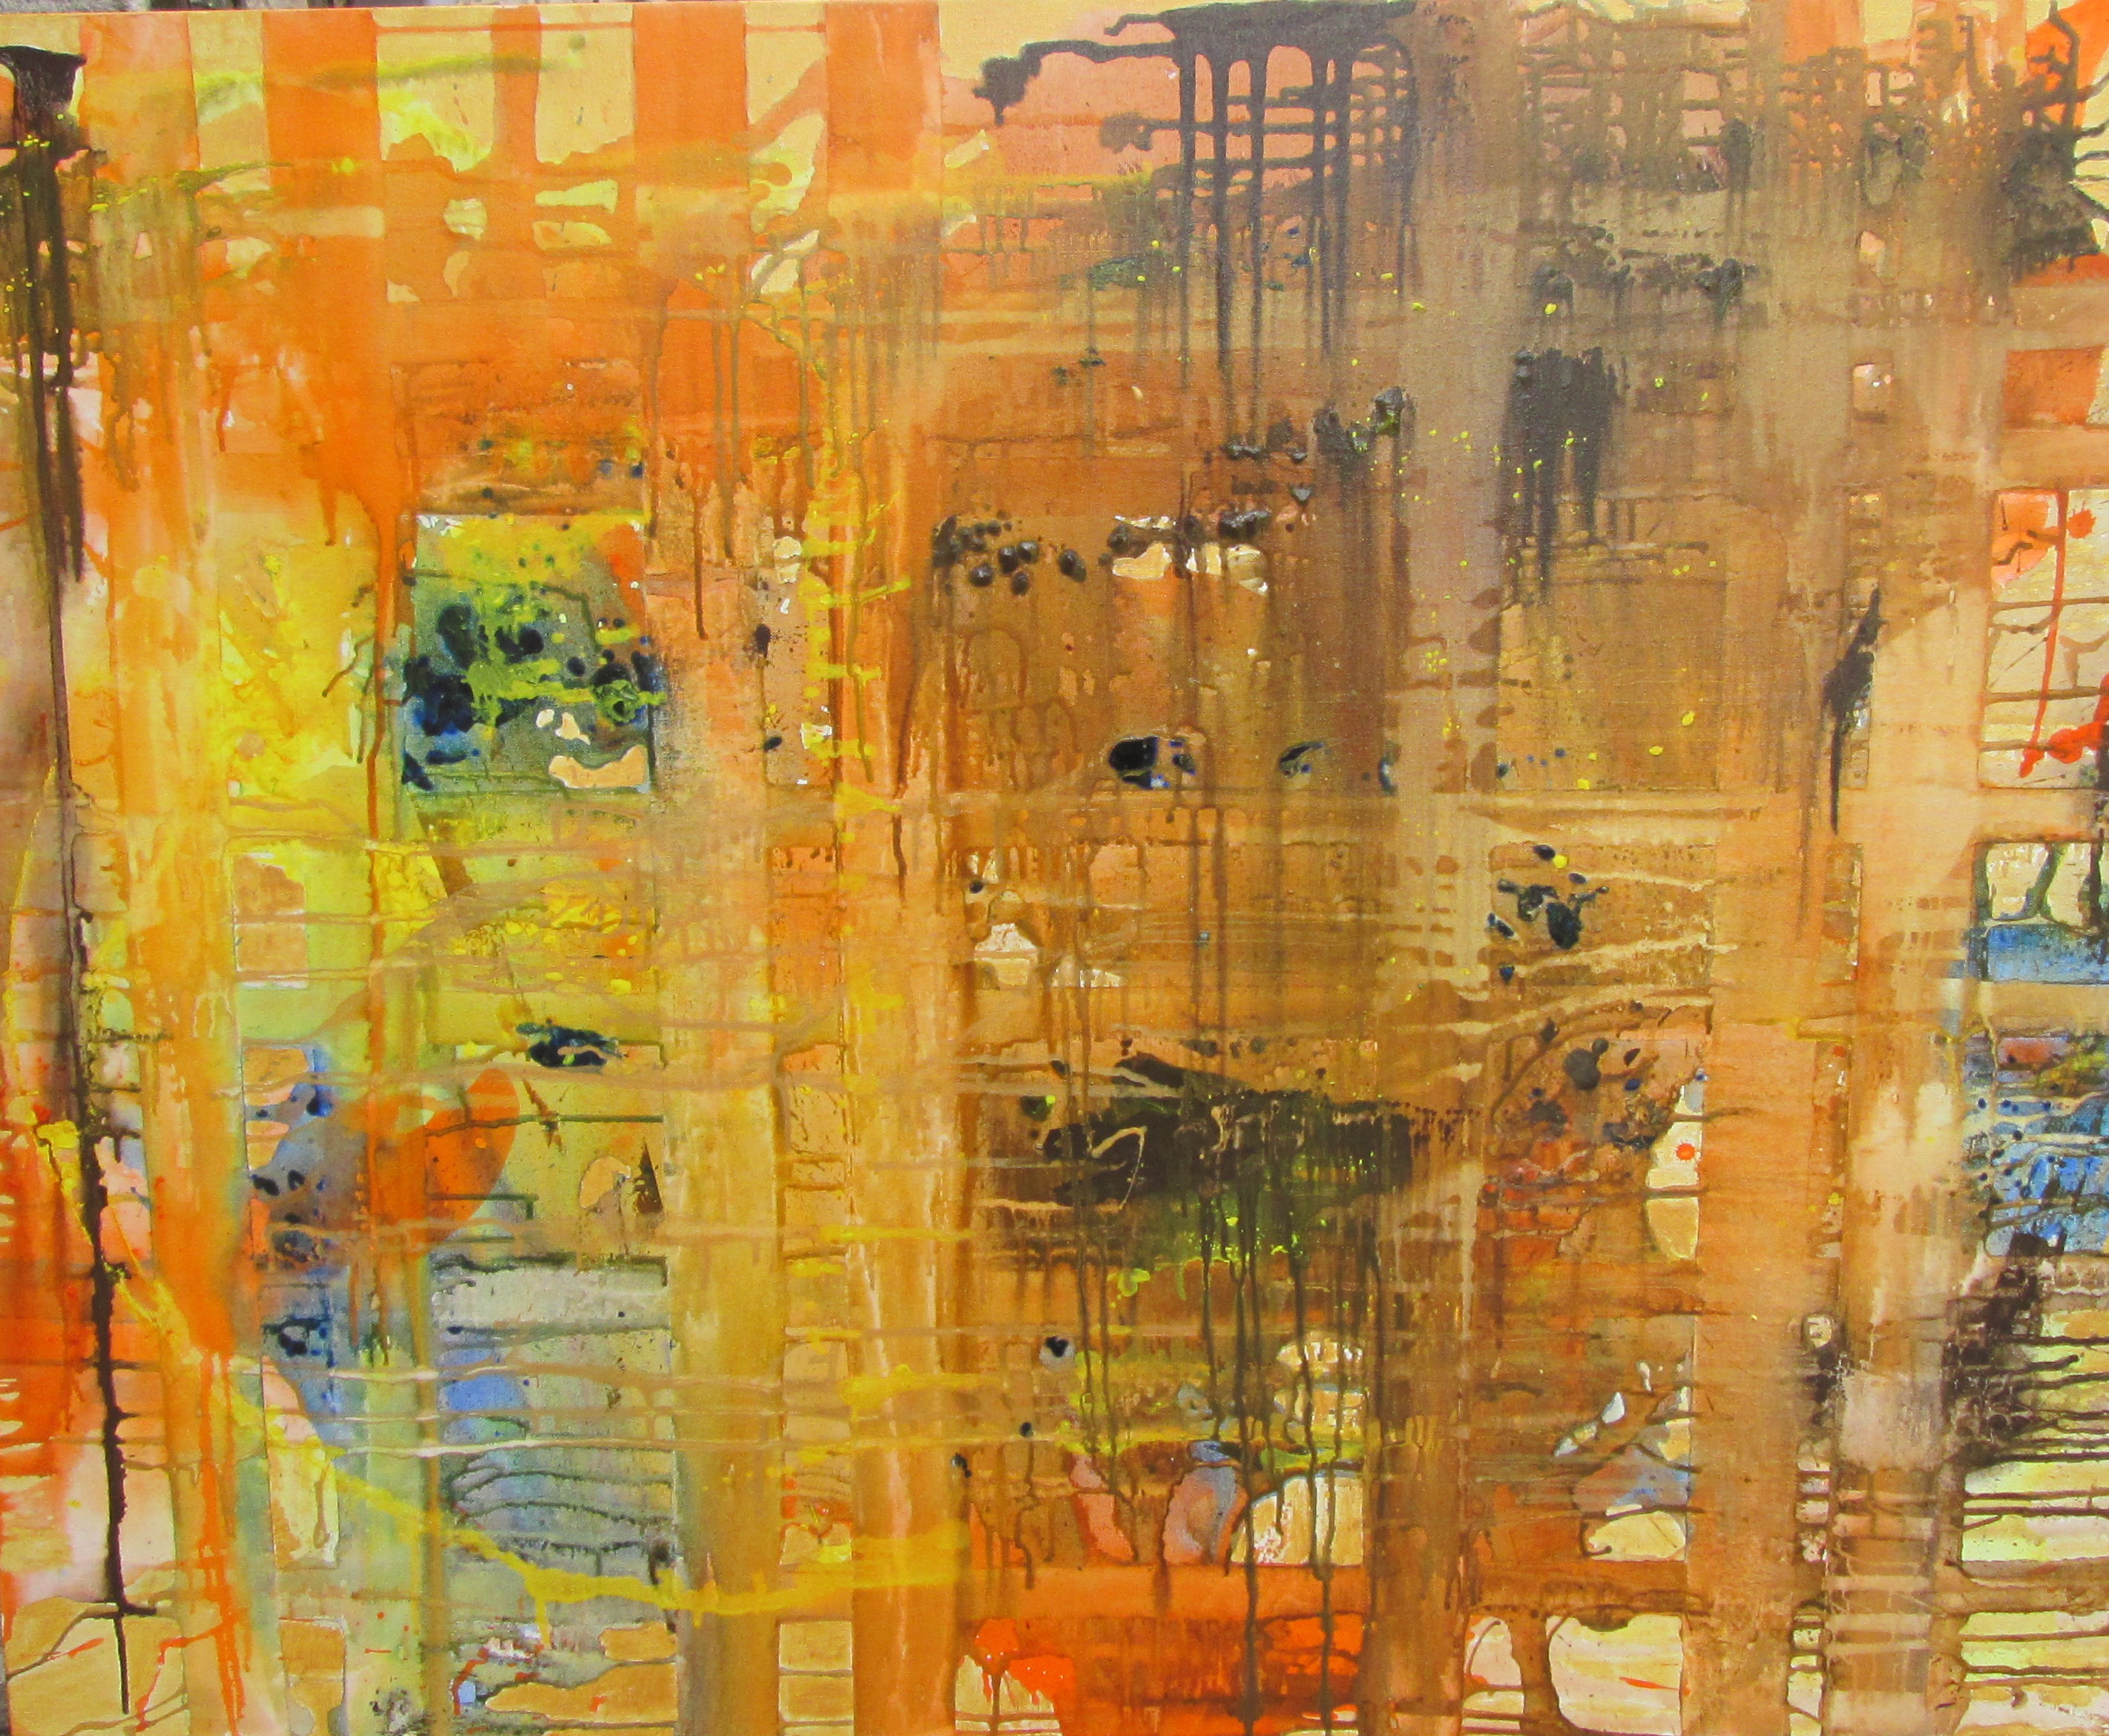 Joan Prime 'Abstract in Yellow' - entrant 2014